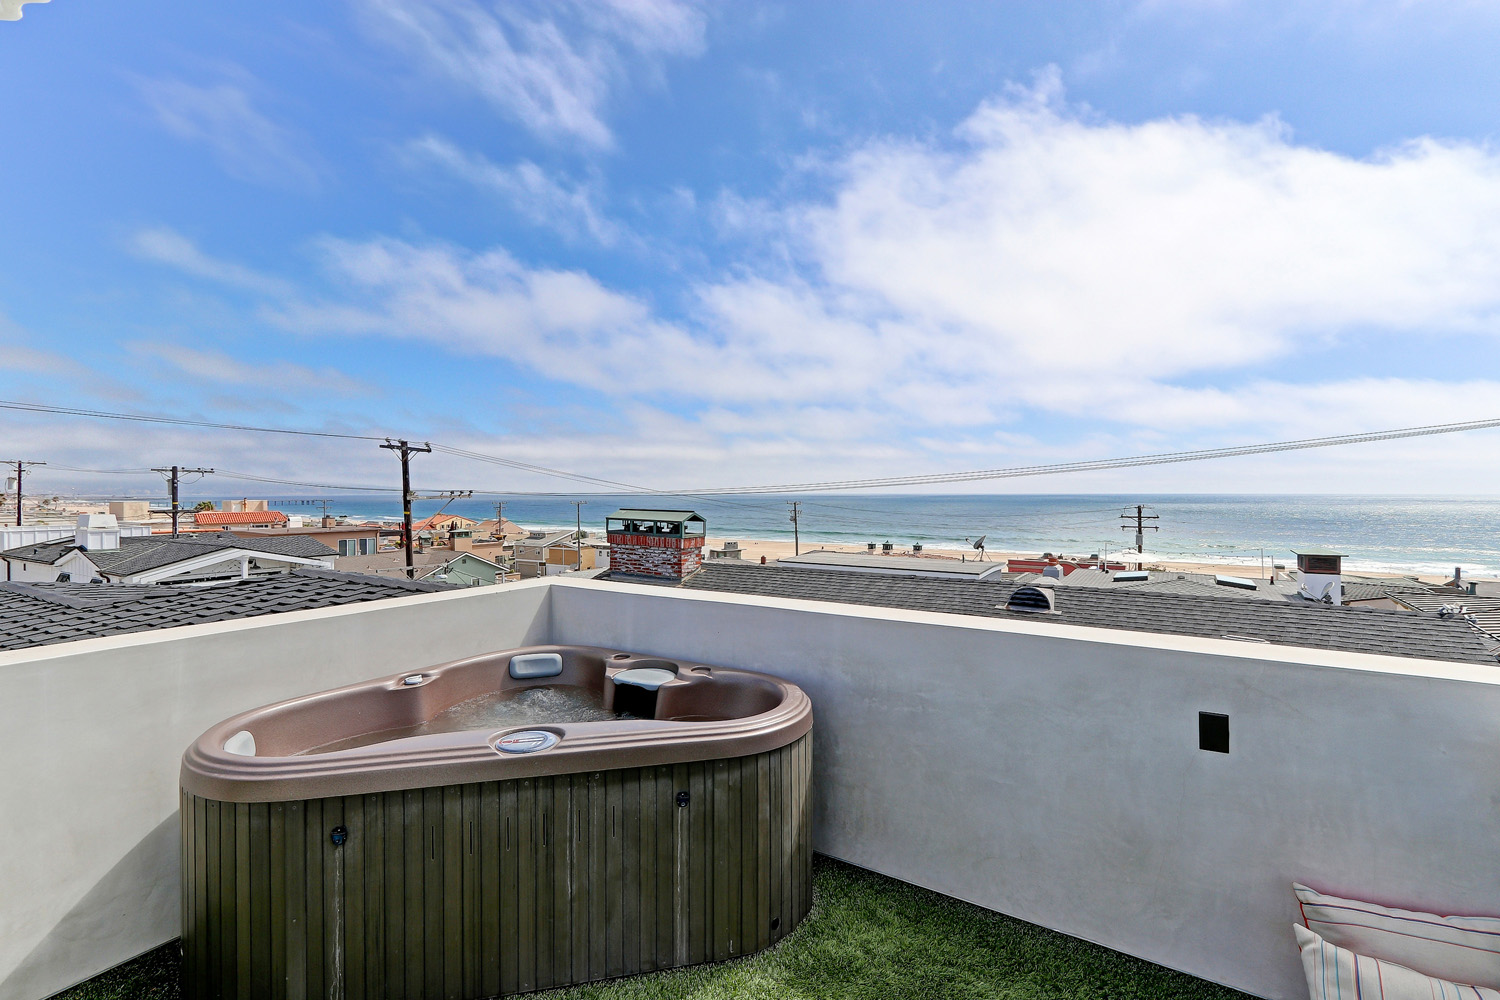 Additional photo for property listing at Modern in Hermosa 123 28th St, Hermosa Beach, CA 90254 Hermosa Beach, Californië,90254 Verenigde Staten